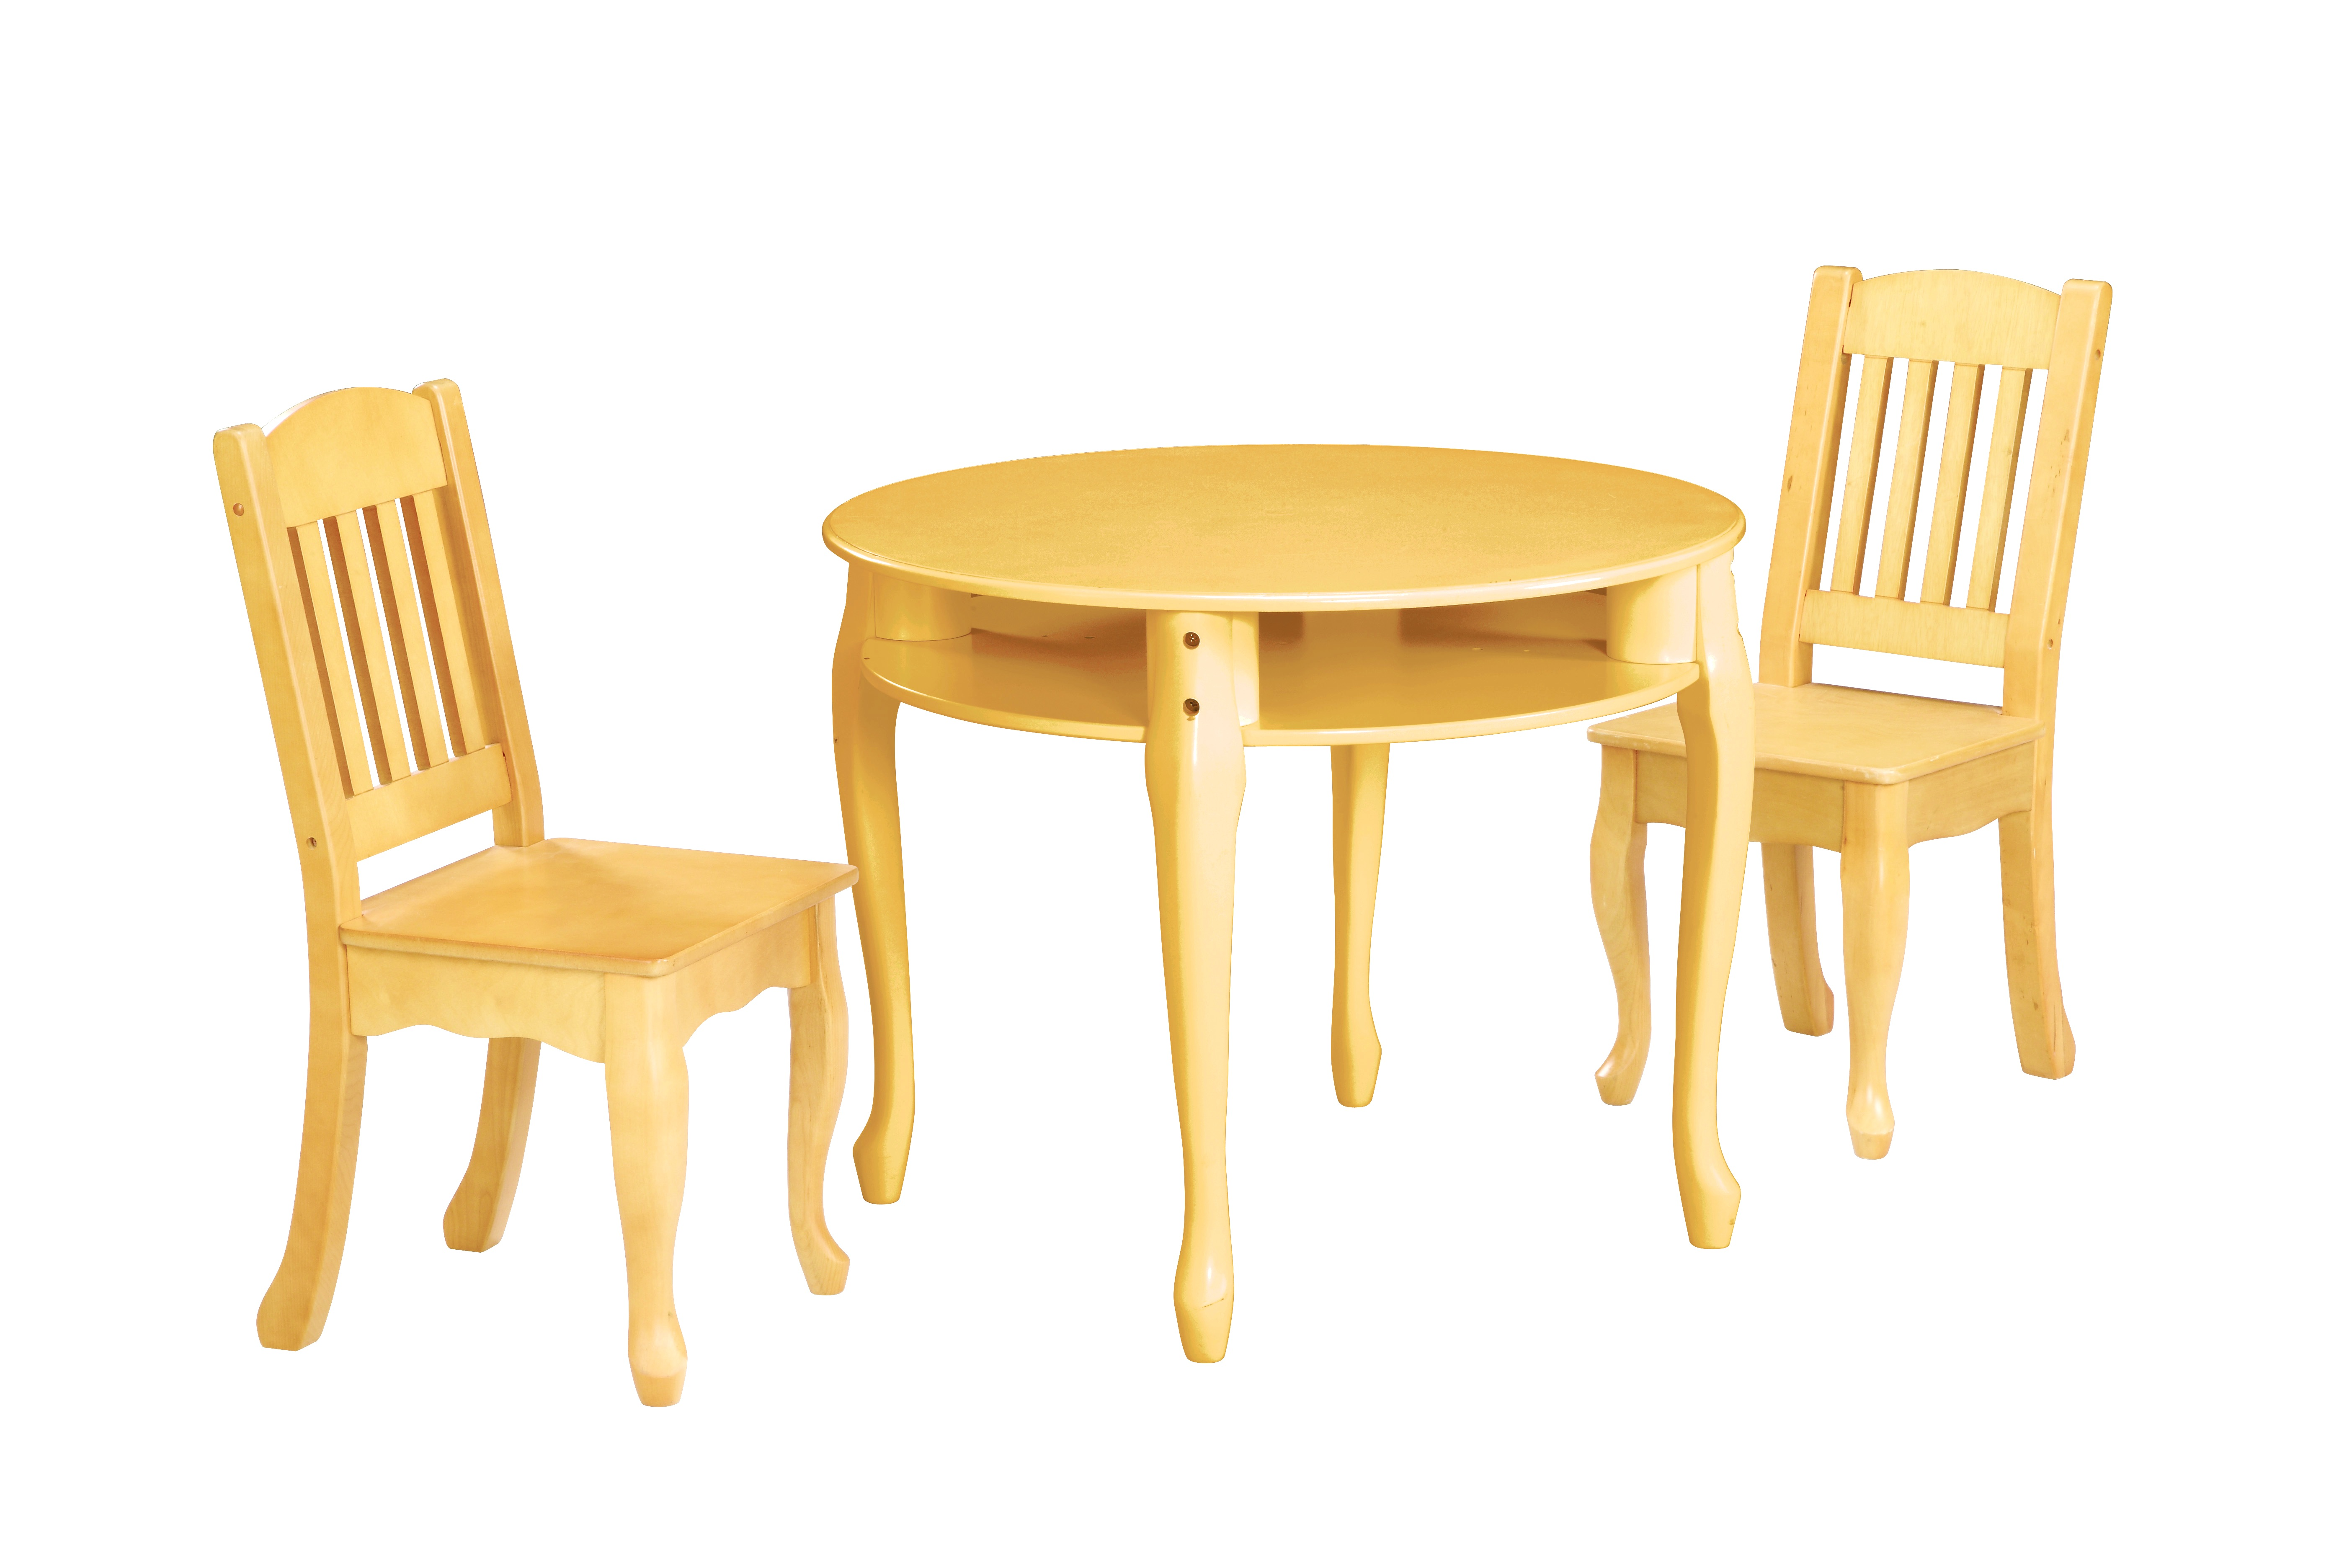 Round Table And Chairs Clipart.